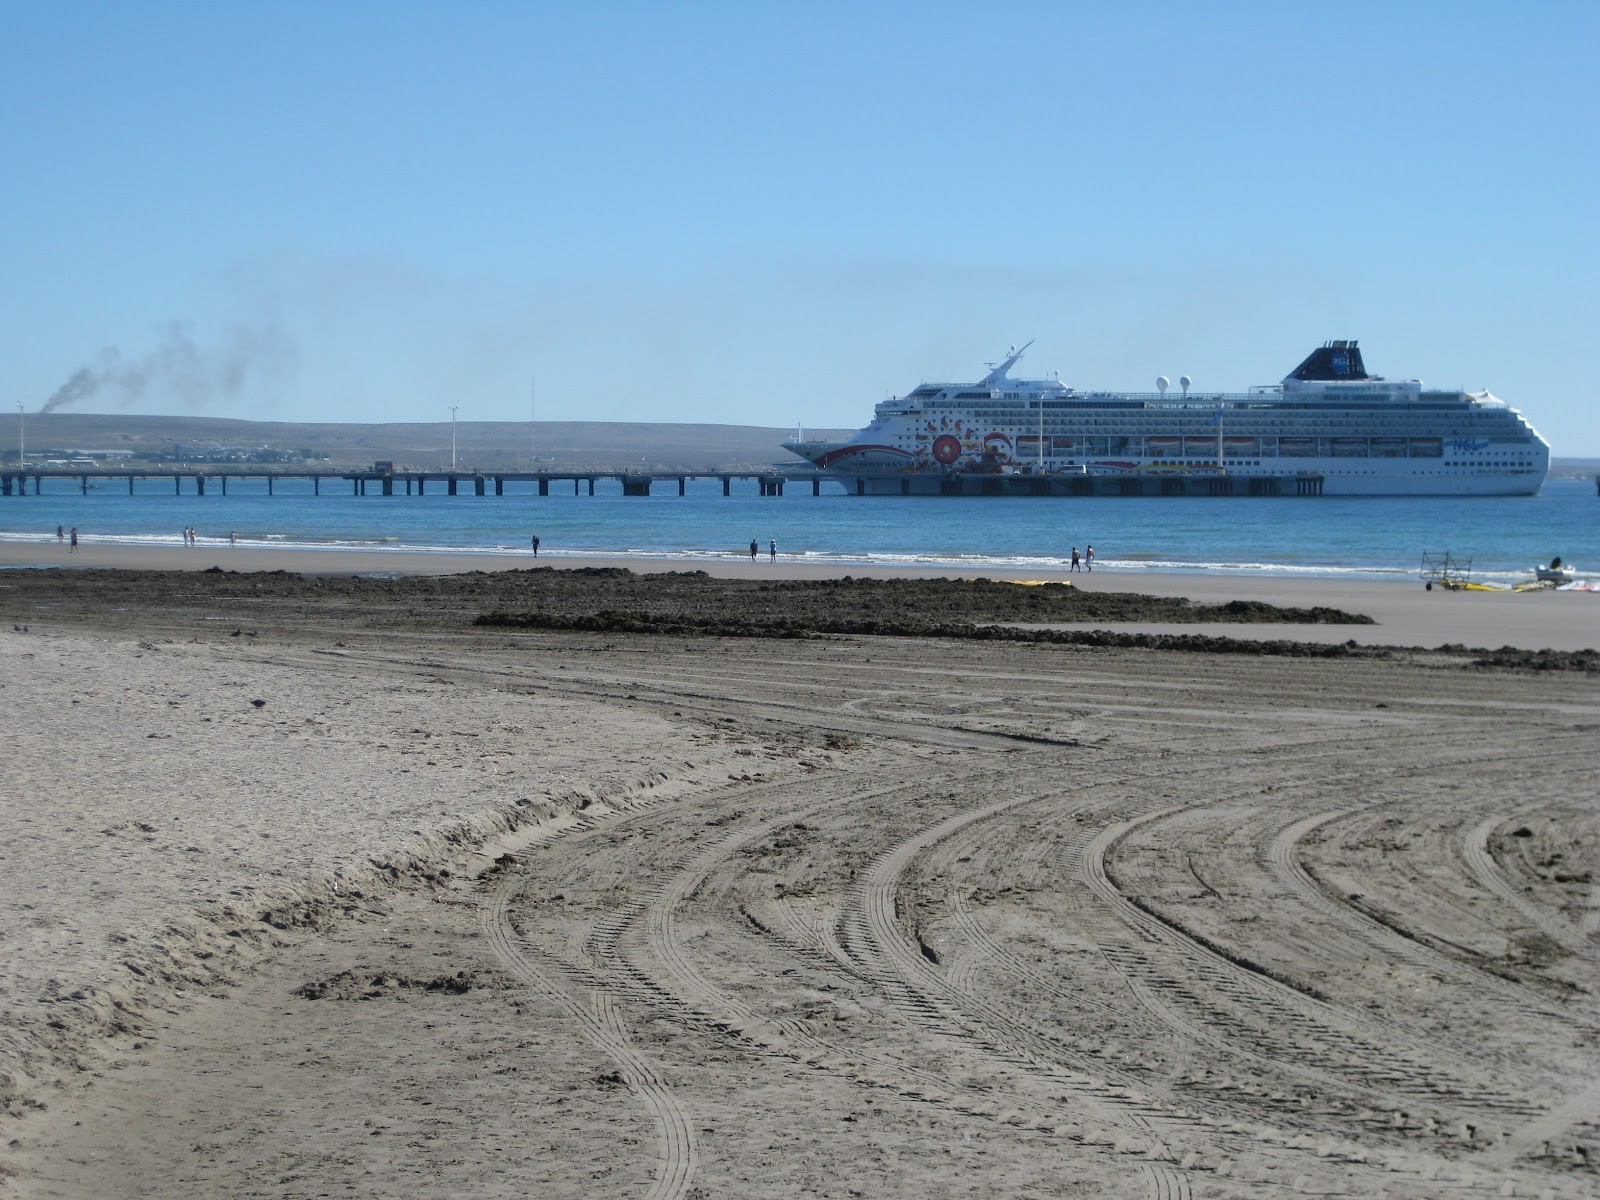 Cruise ships stopping for the day